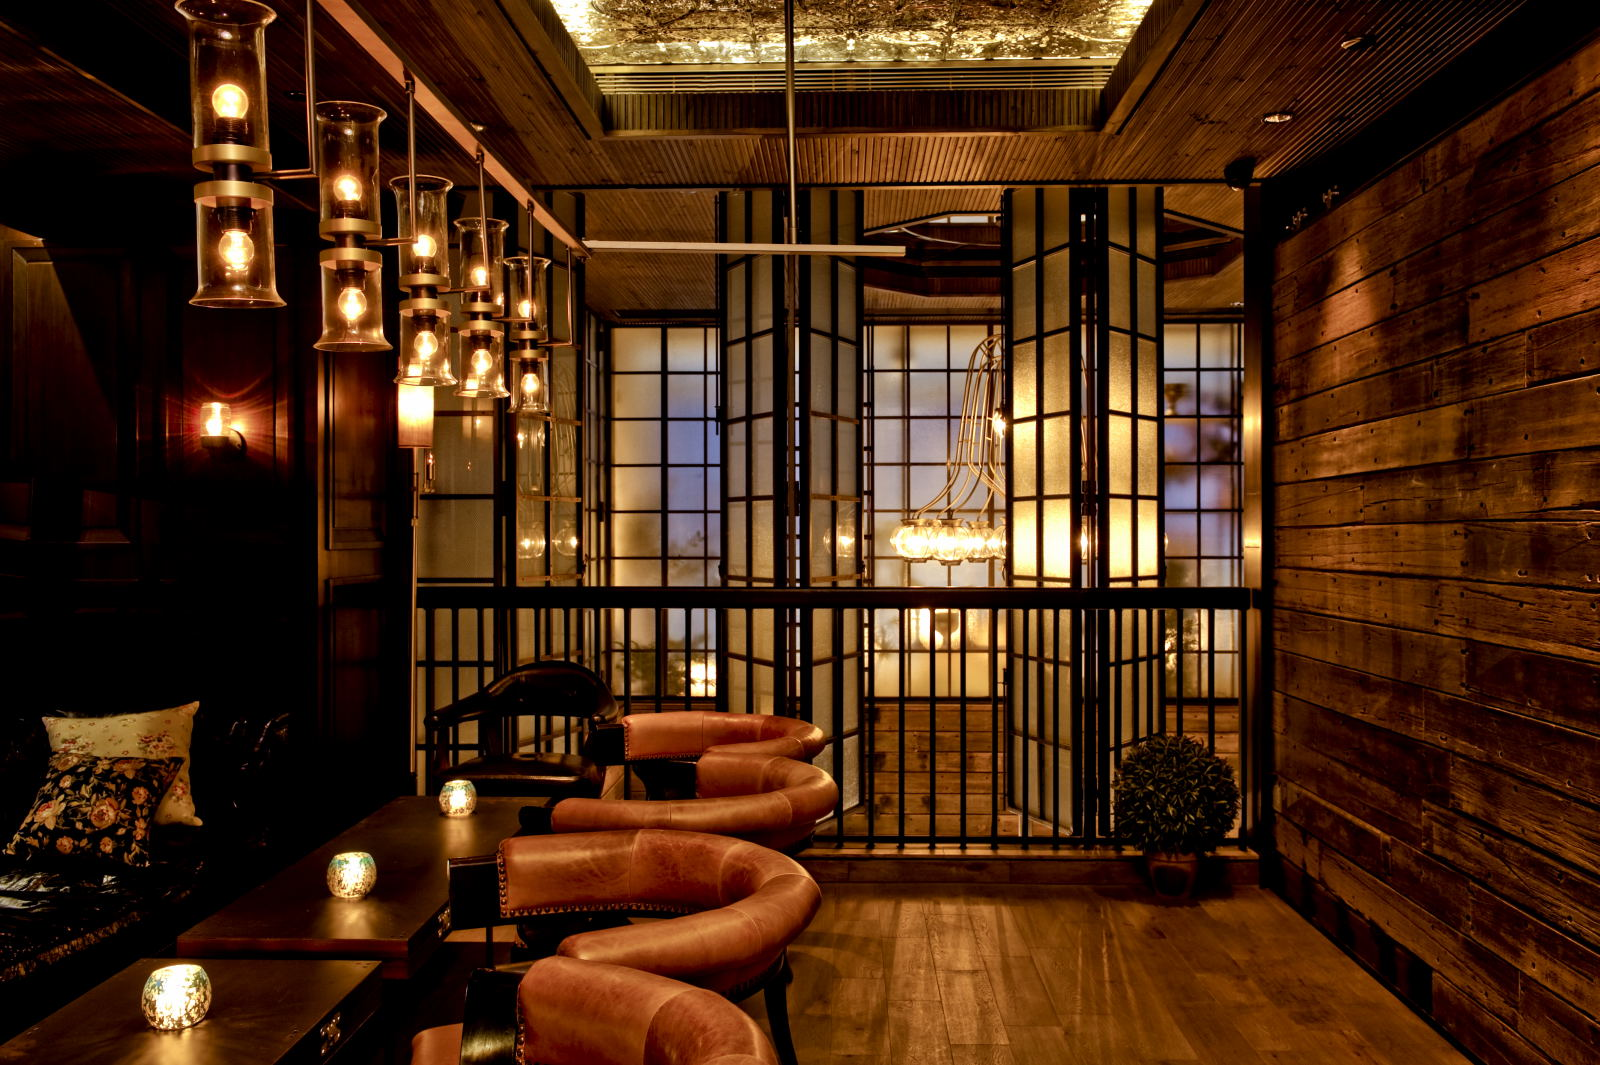 Speakeasy bar on pinterest bar restaurants and lounges - Lounge deco ...